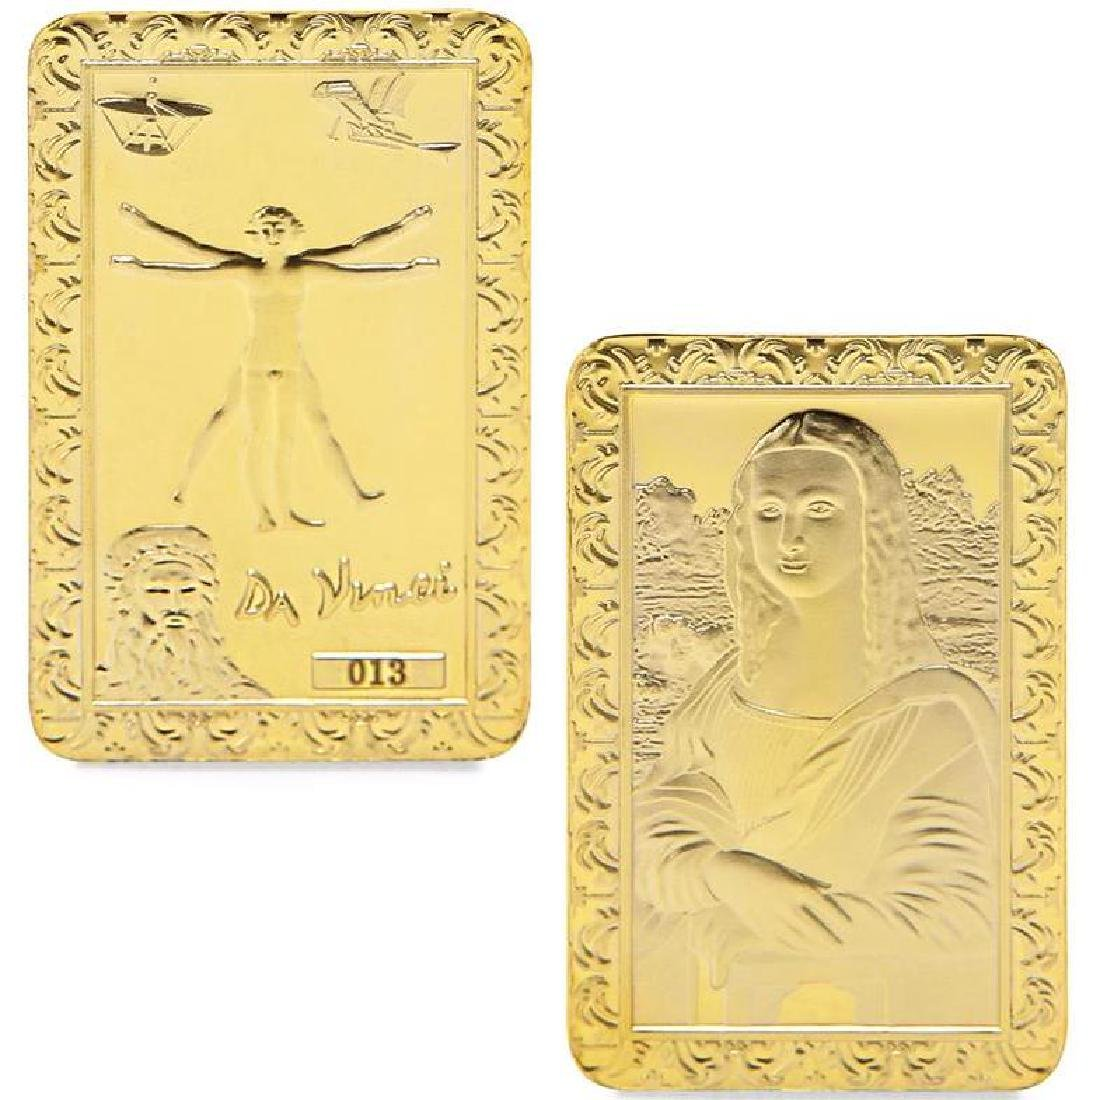 Leonardo Da Vinci Art Gold Clad Bullion Bar